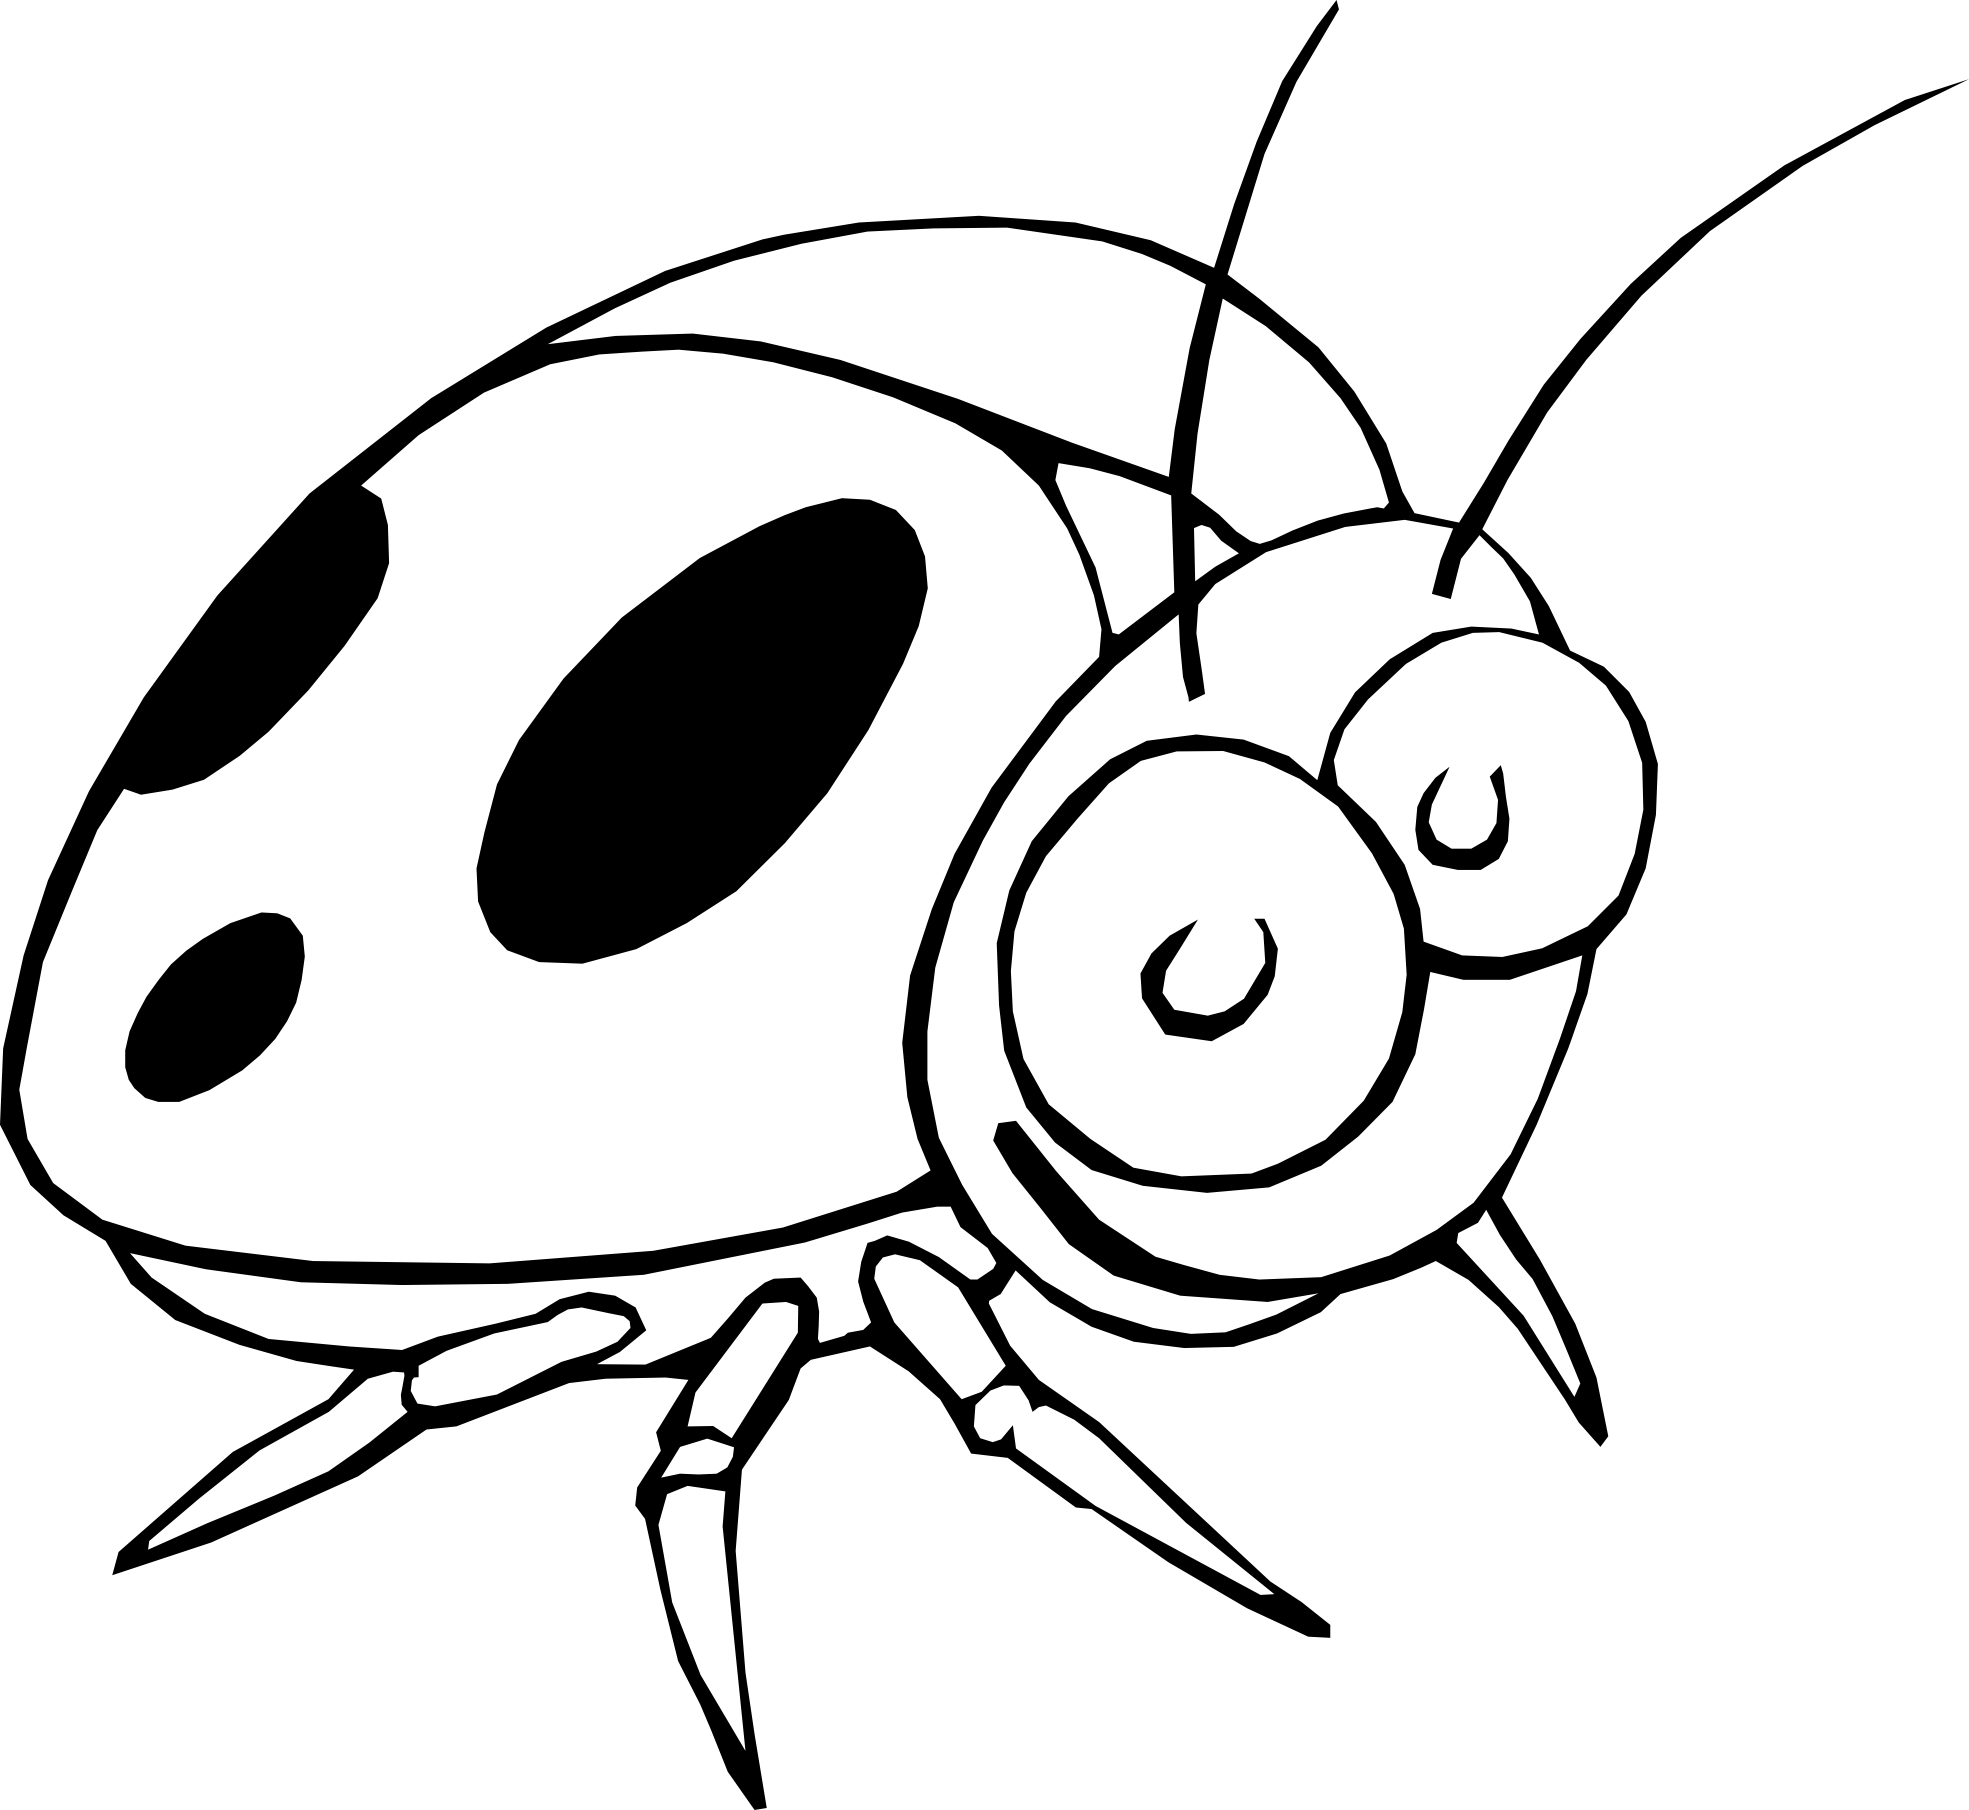 Ladybug 17 Black White Line Art Flower Scalable Vector Graphics Svg